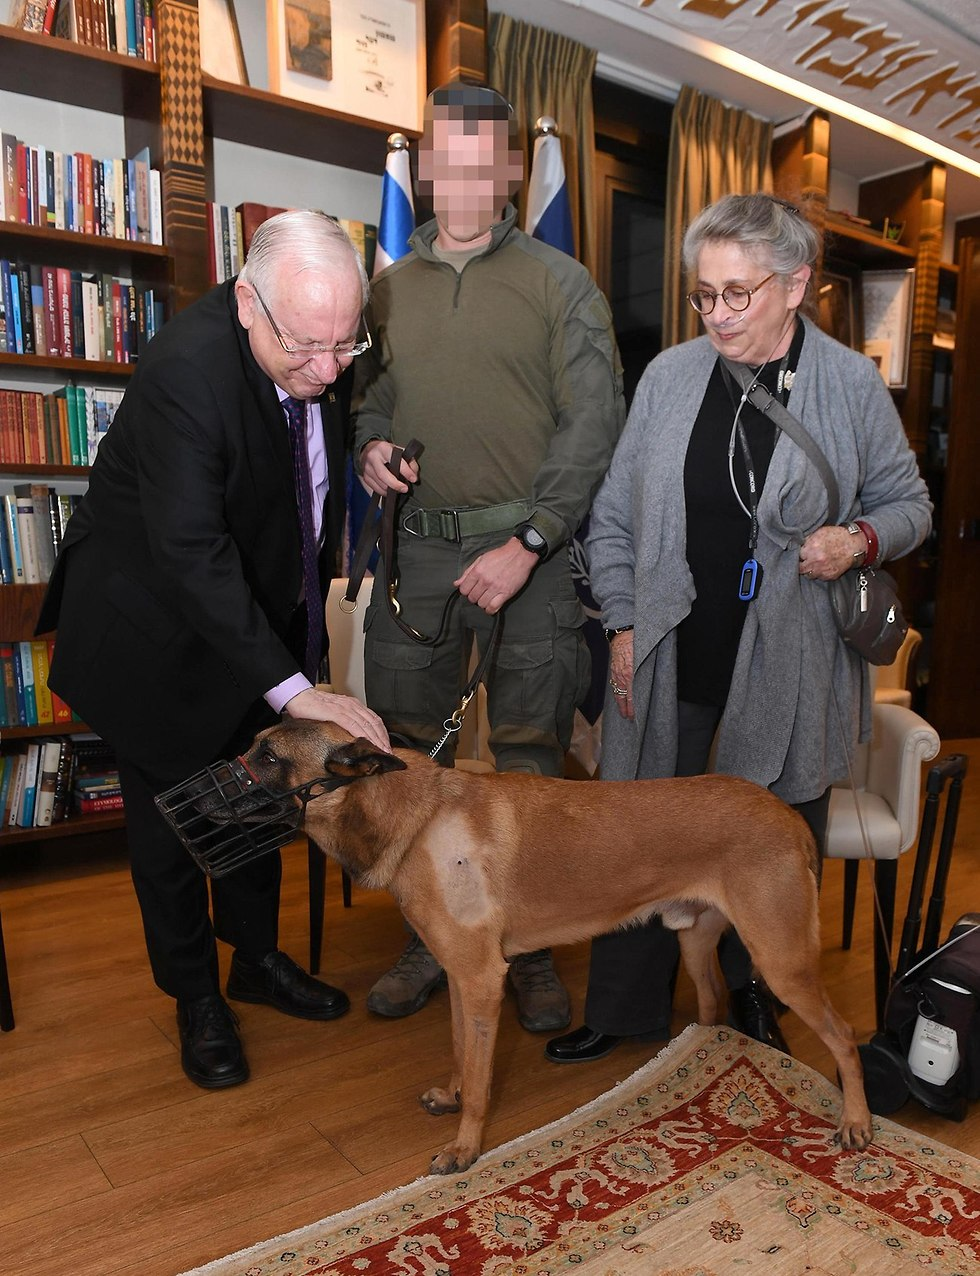 Rambo visits President Reuven Rivlin (L) and his wife at the President's Residence, December 25, 2018 (Photo: Mark Neiman, GPO)